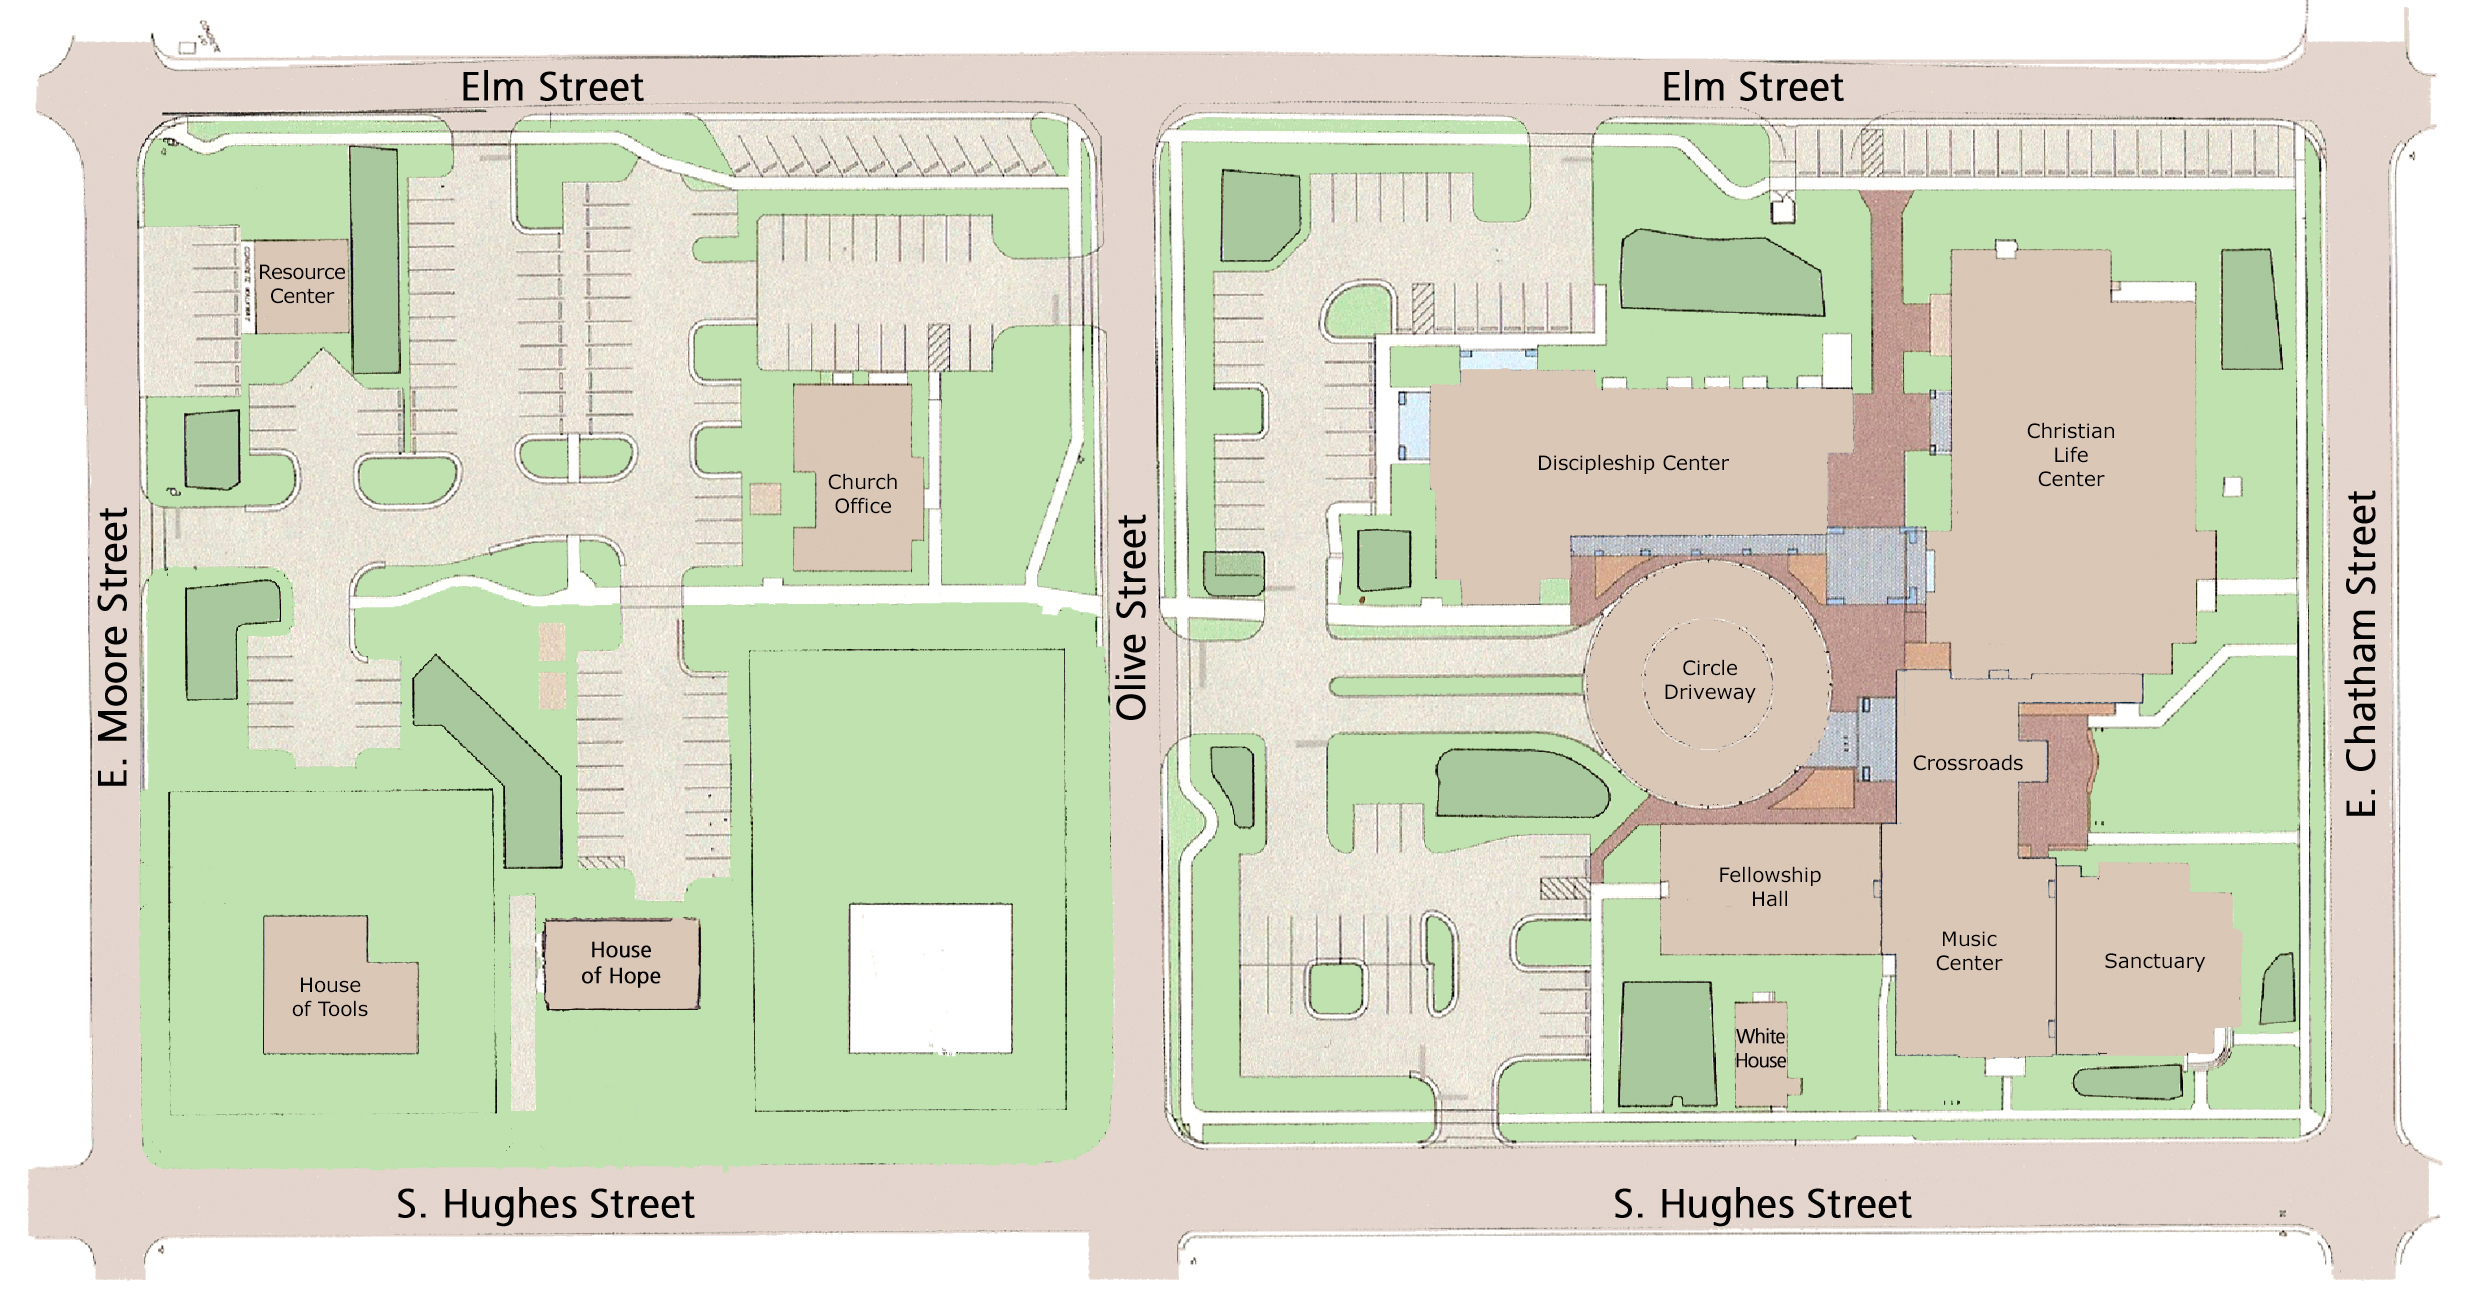 Umc Campus Map.I M New Apex Umc